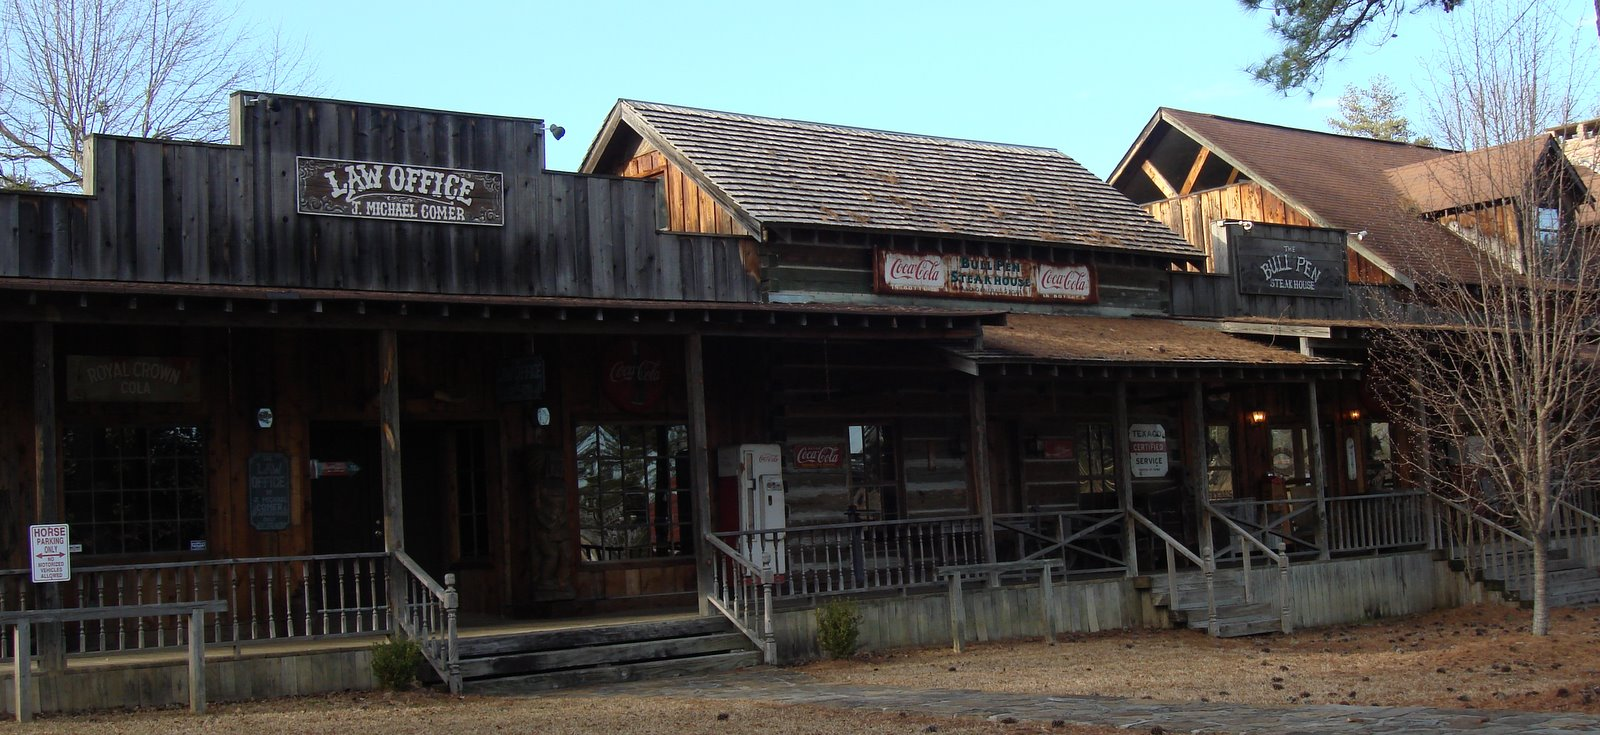 Walker County, [historic pictures] the home of C. J. Harris, a finalist in American Idol 2014 & the Music Park